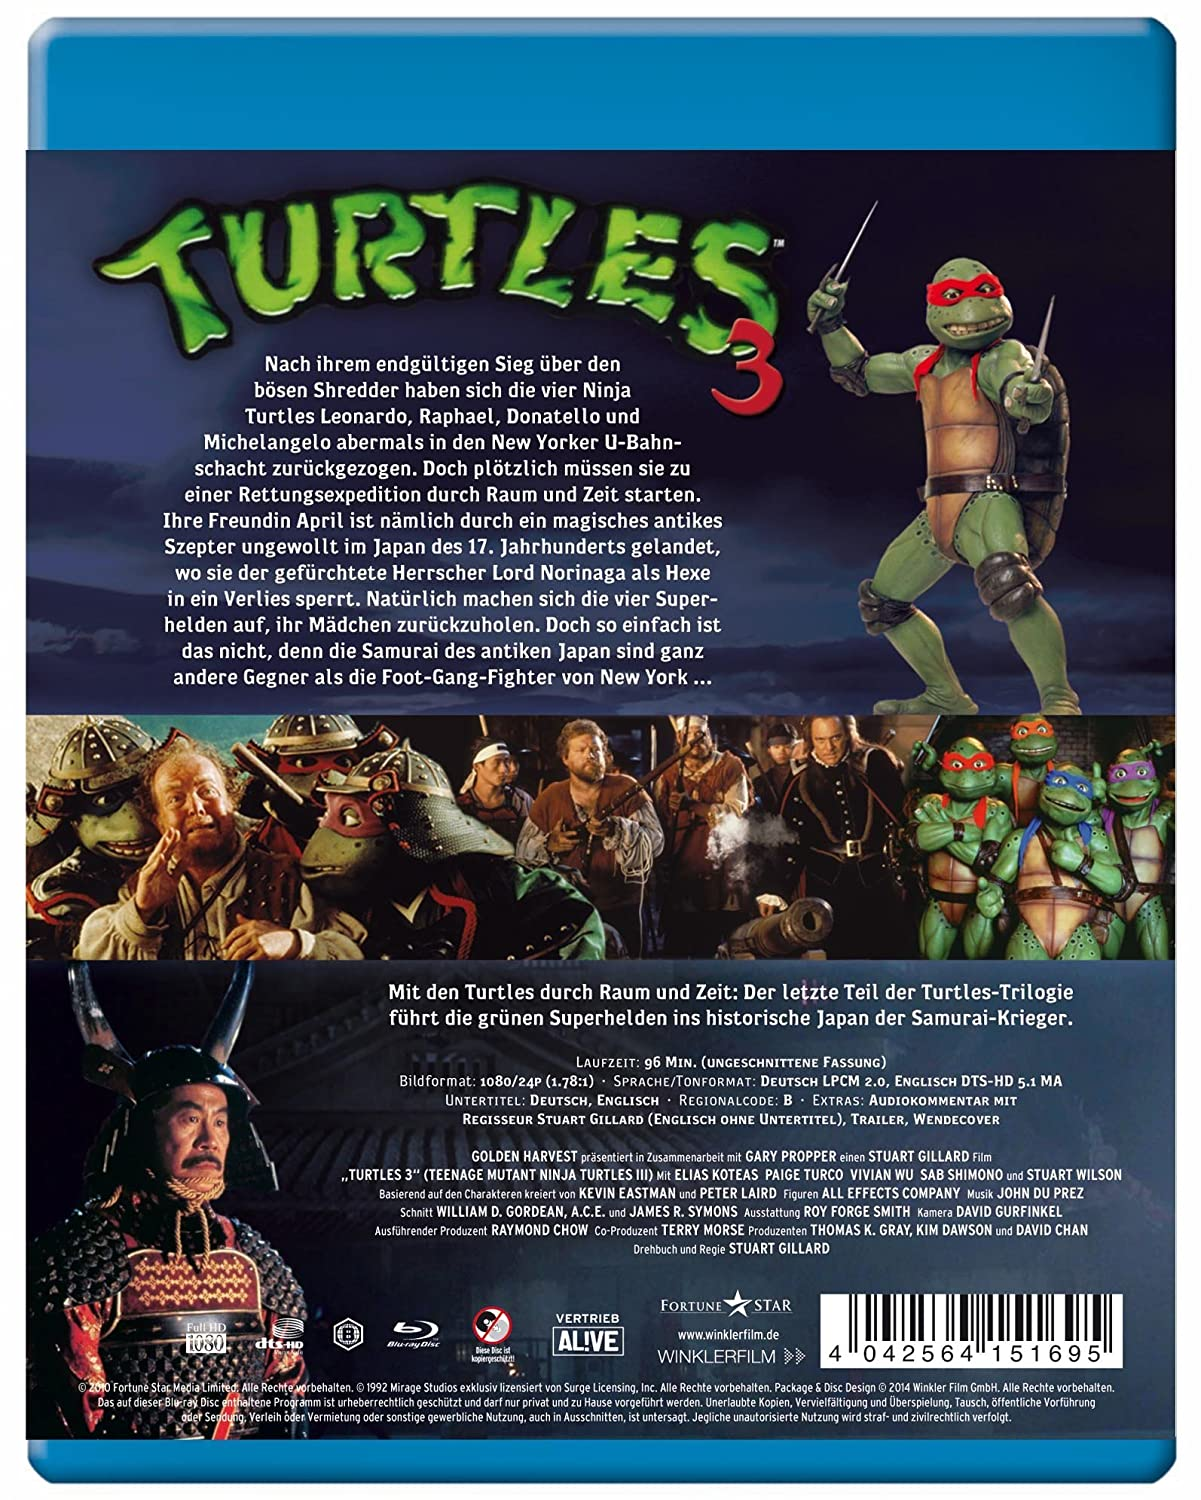 Amazon.com: Turtles 3 - Ninja Turtles: Movies & TV